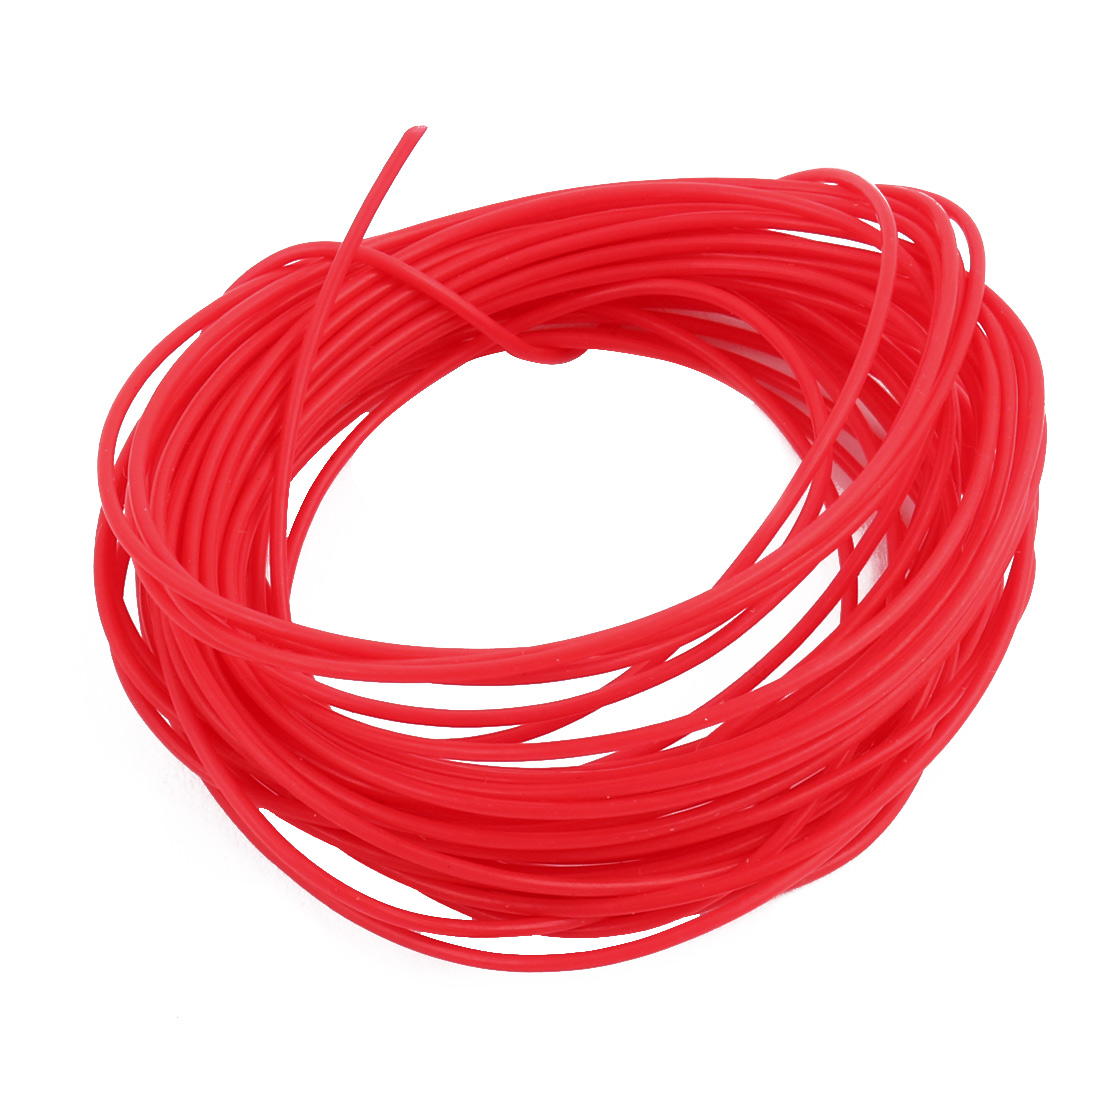 0.56mmx0.86mm PTFE Resistant High Temperature Red Tubing 10 Meters 32.8Ft